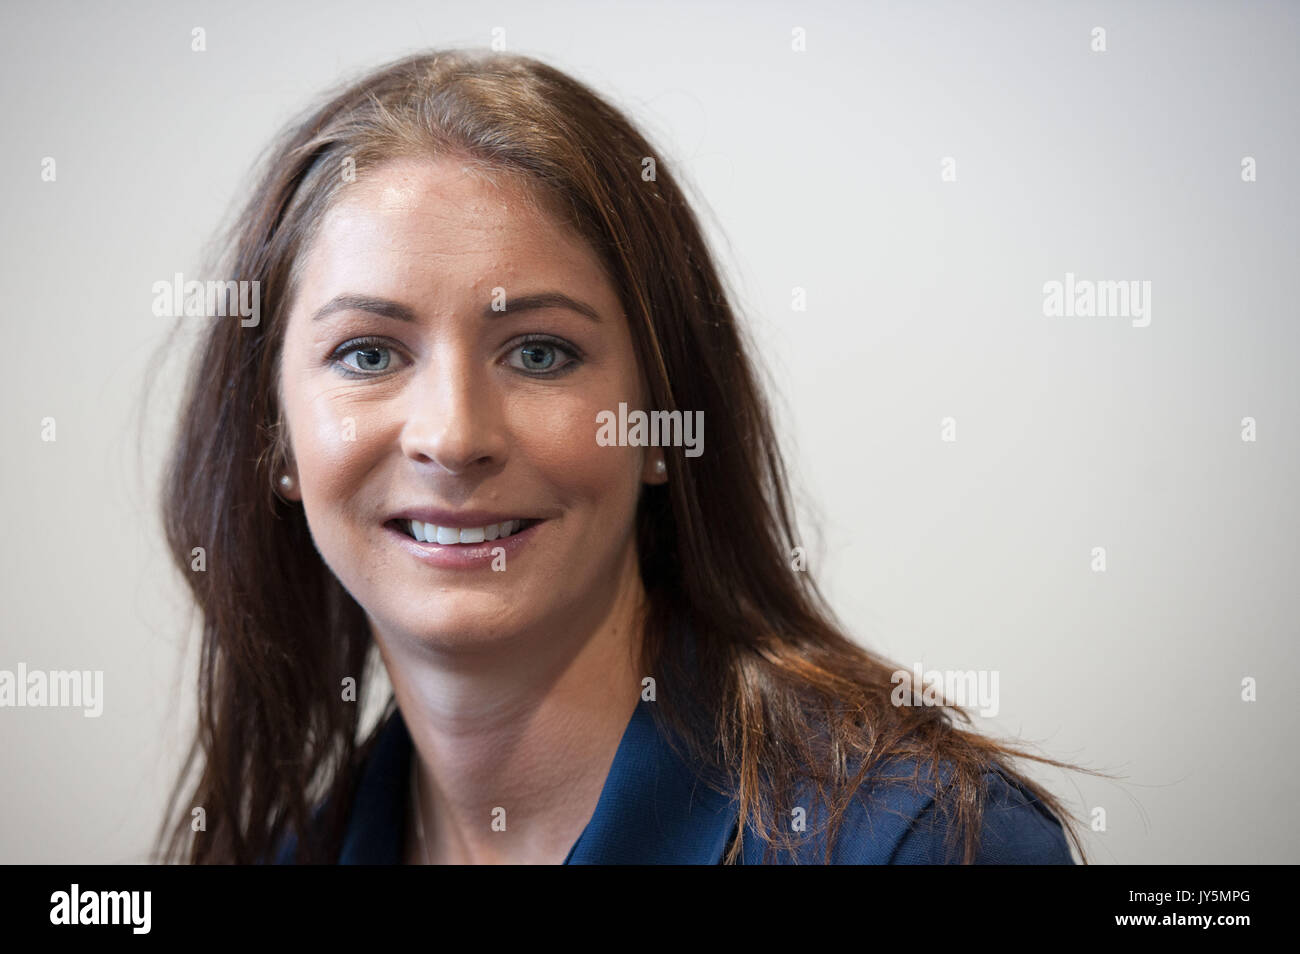 Eve Muirhead Stock Photos Amp Eve Muirhead Stock Images Alamy